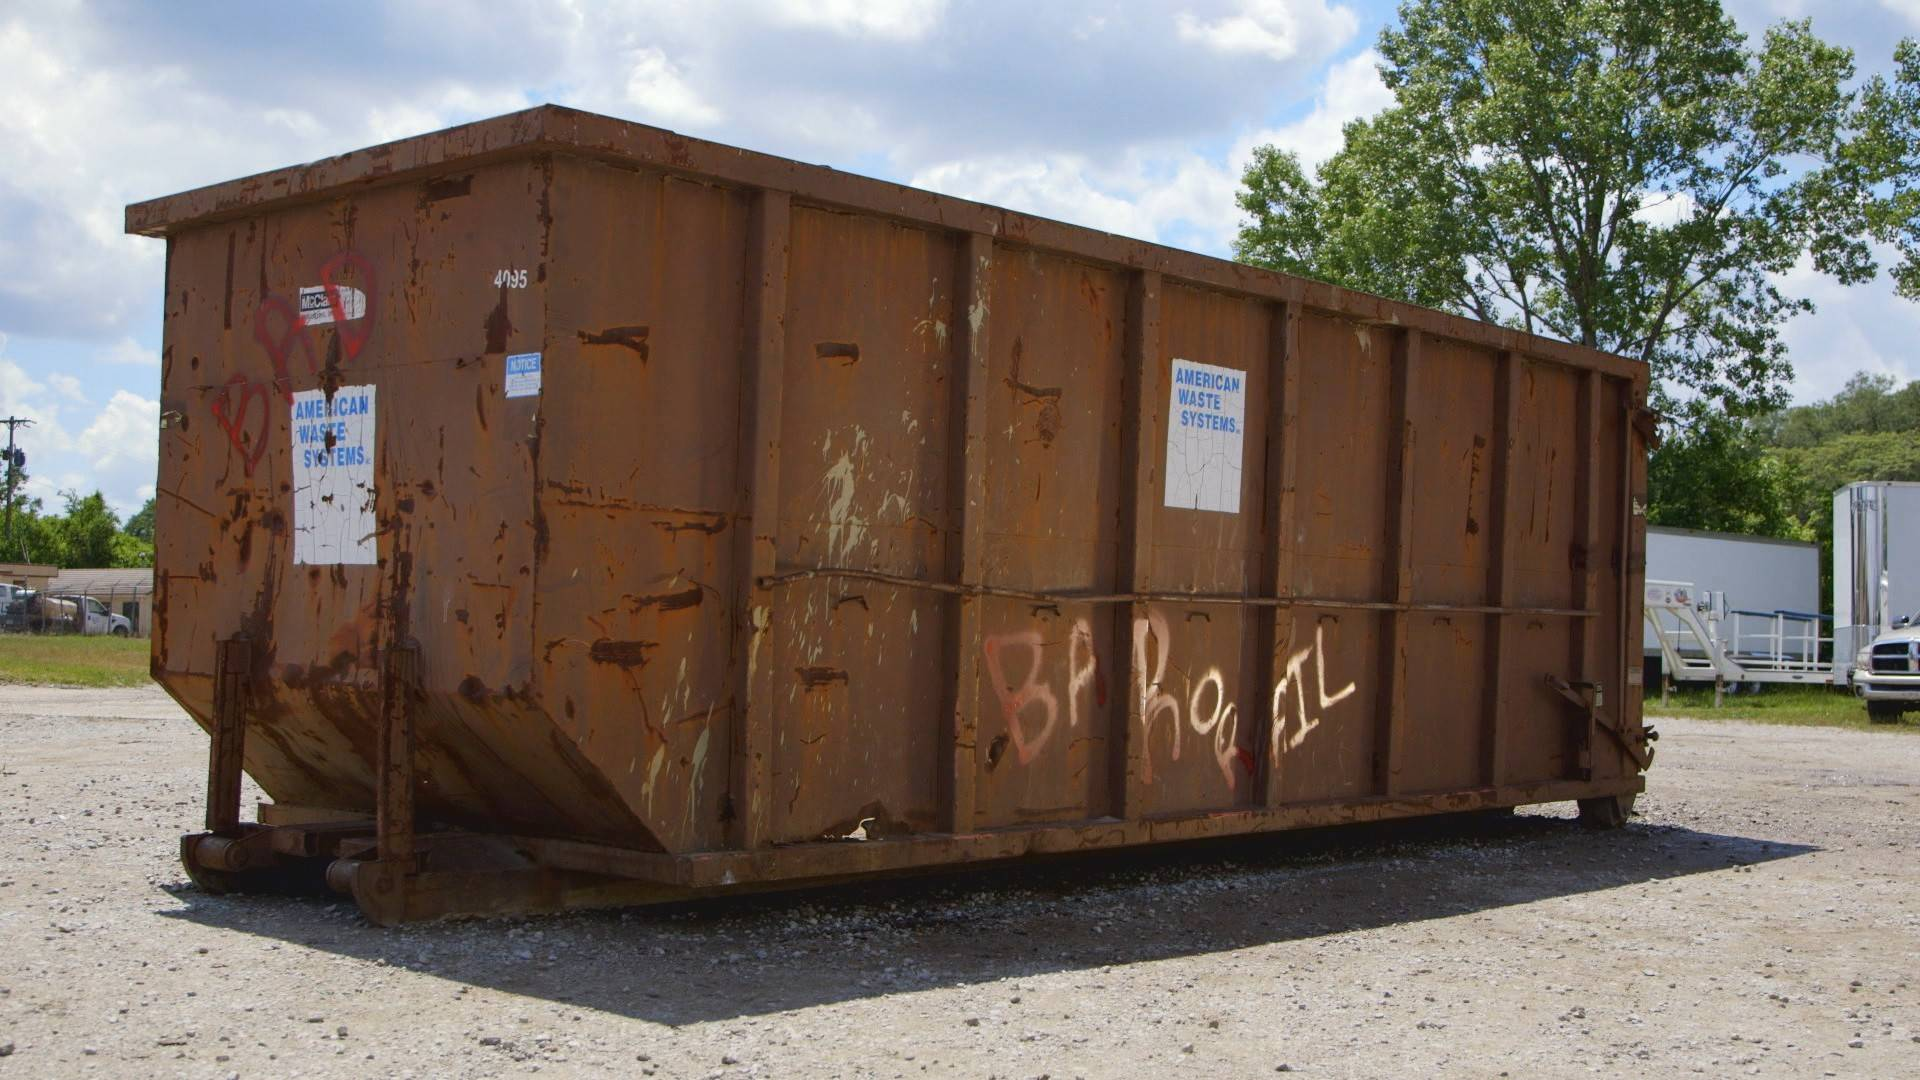 Dumpster turned tiny home